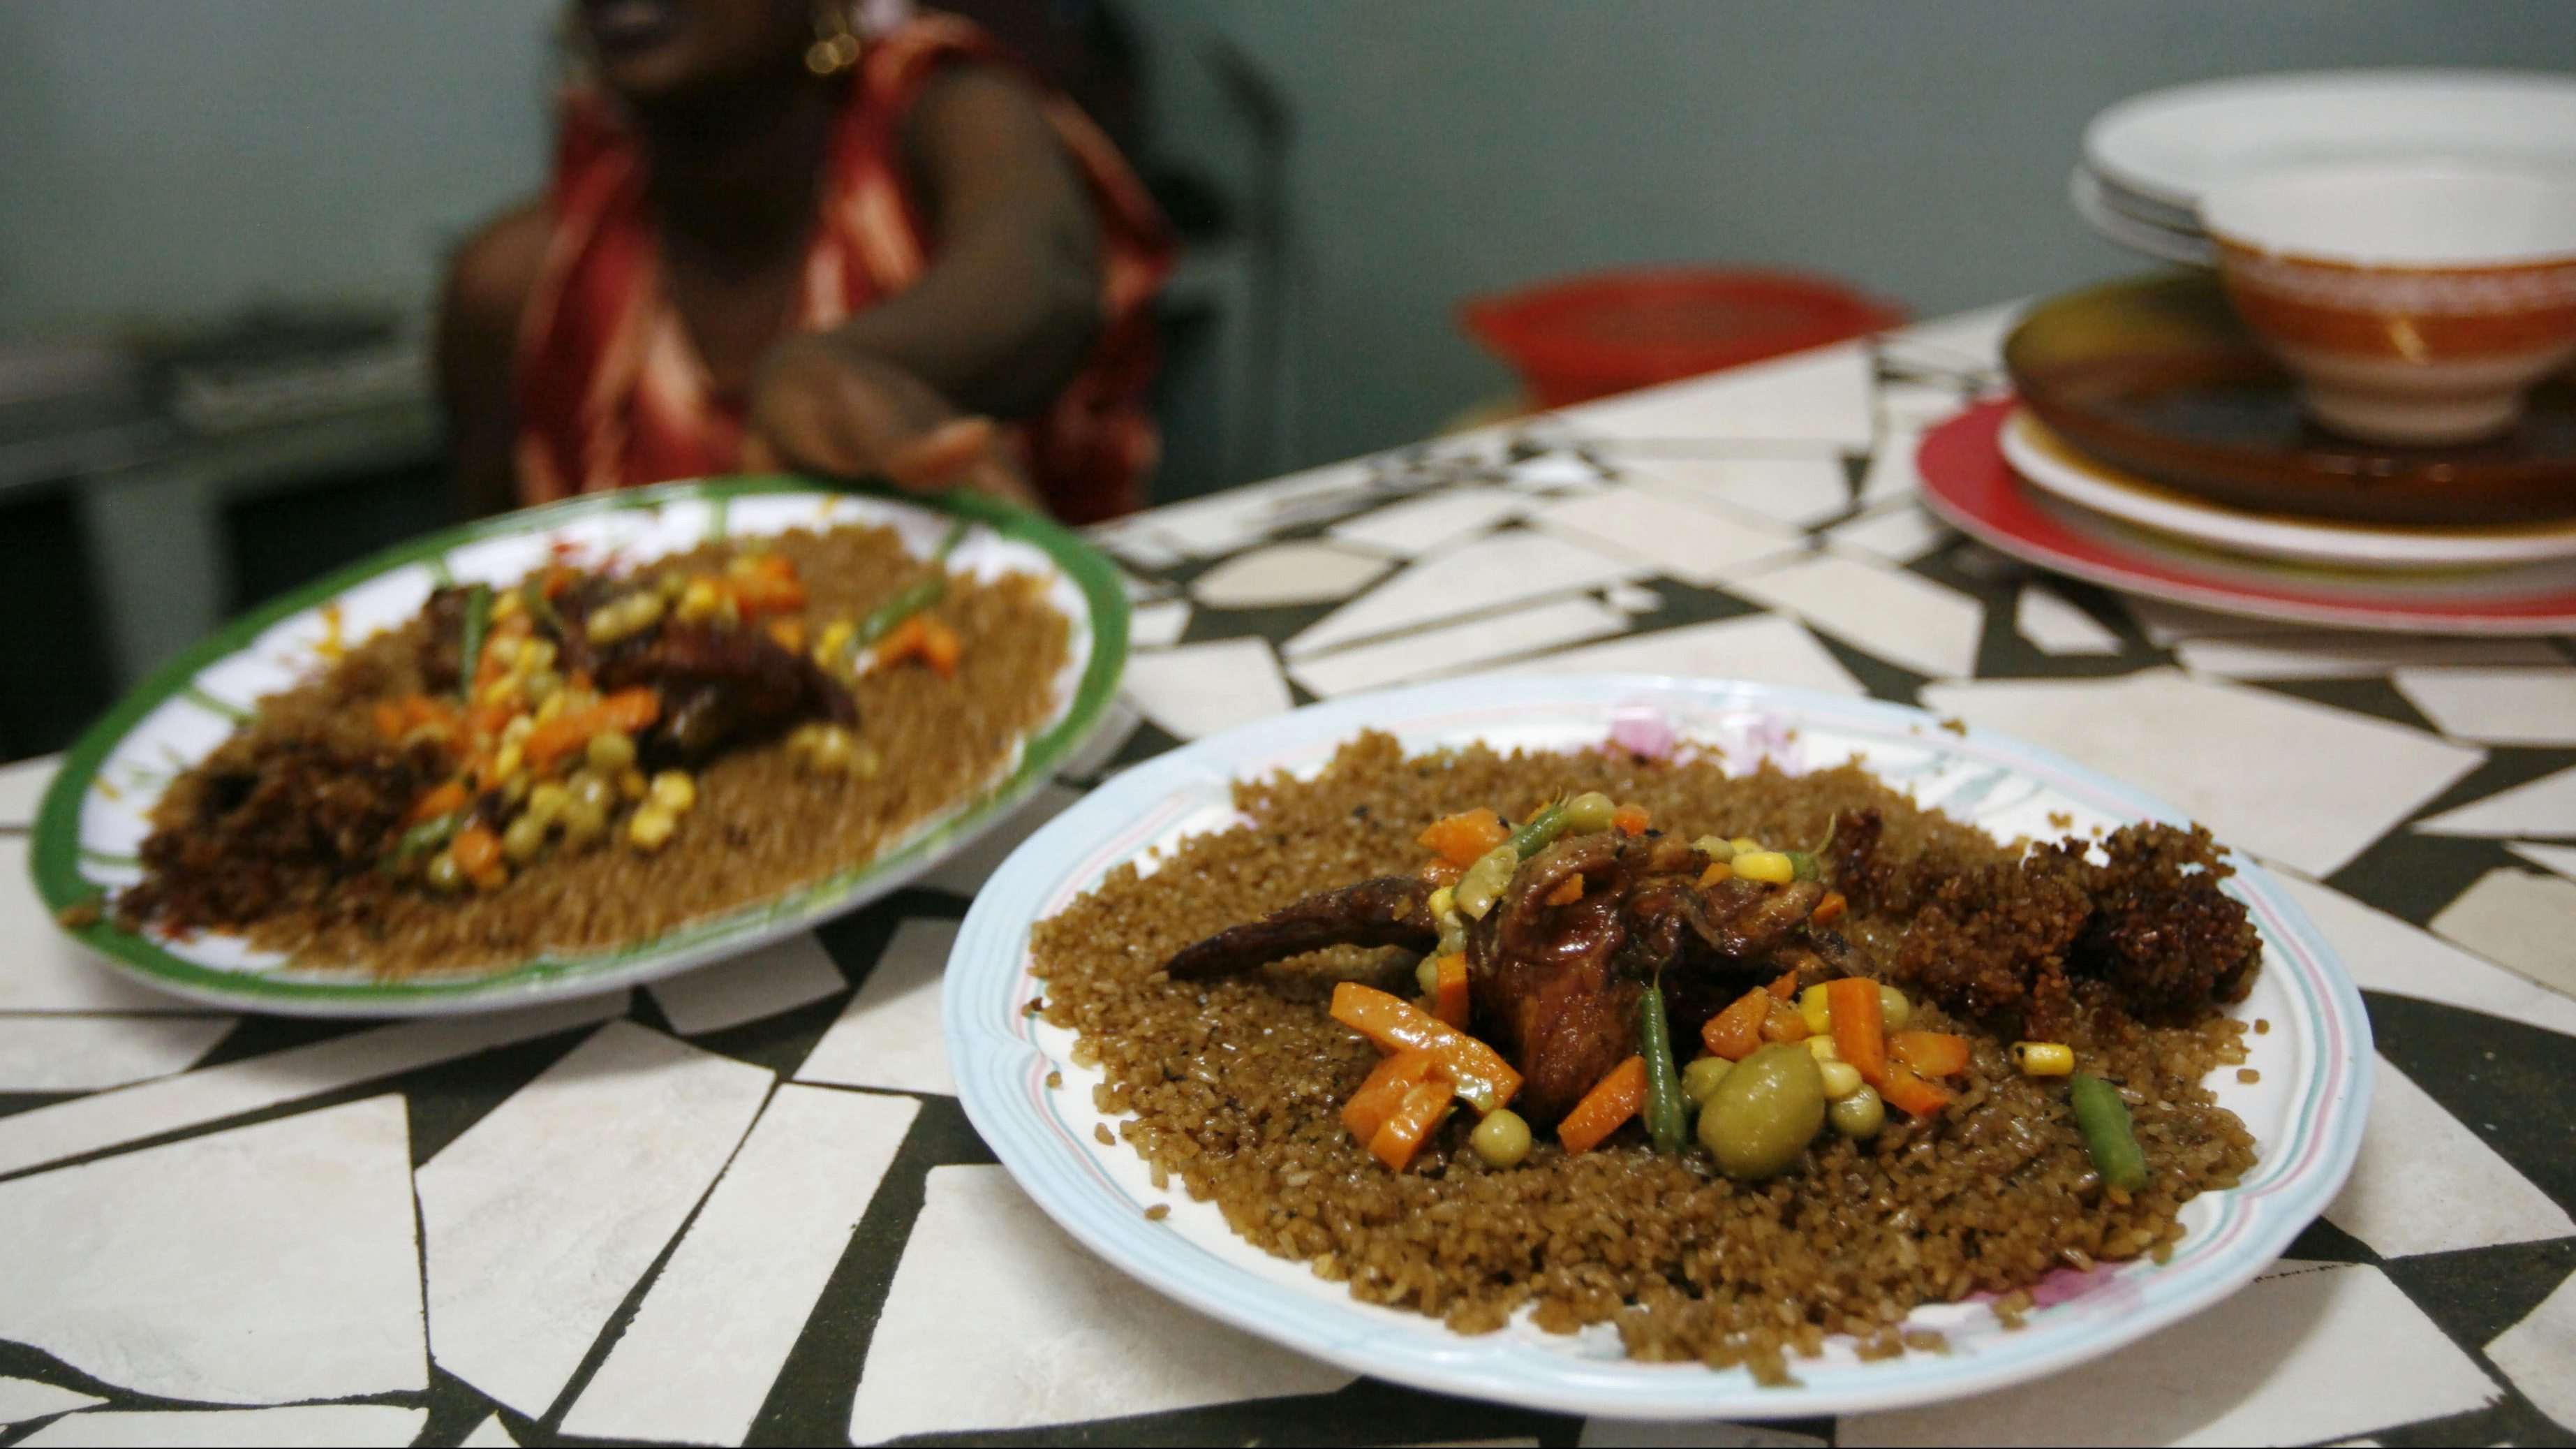 How Africa's entrepreneurs can innovate and invest to put African cuisine on the world stage